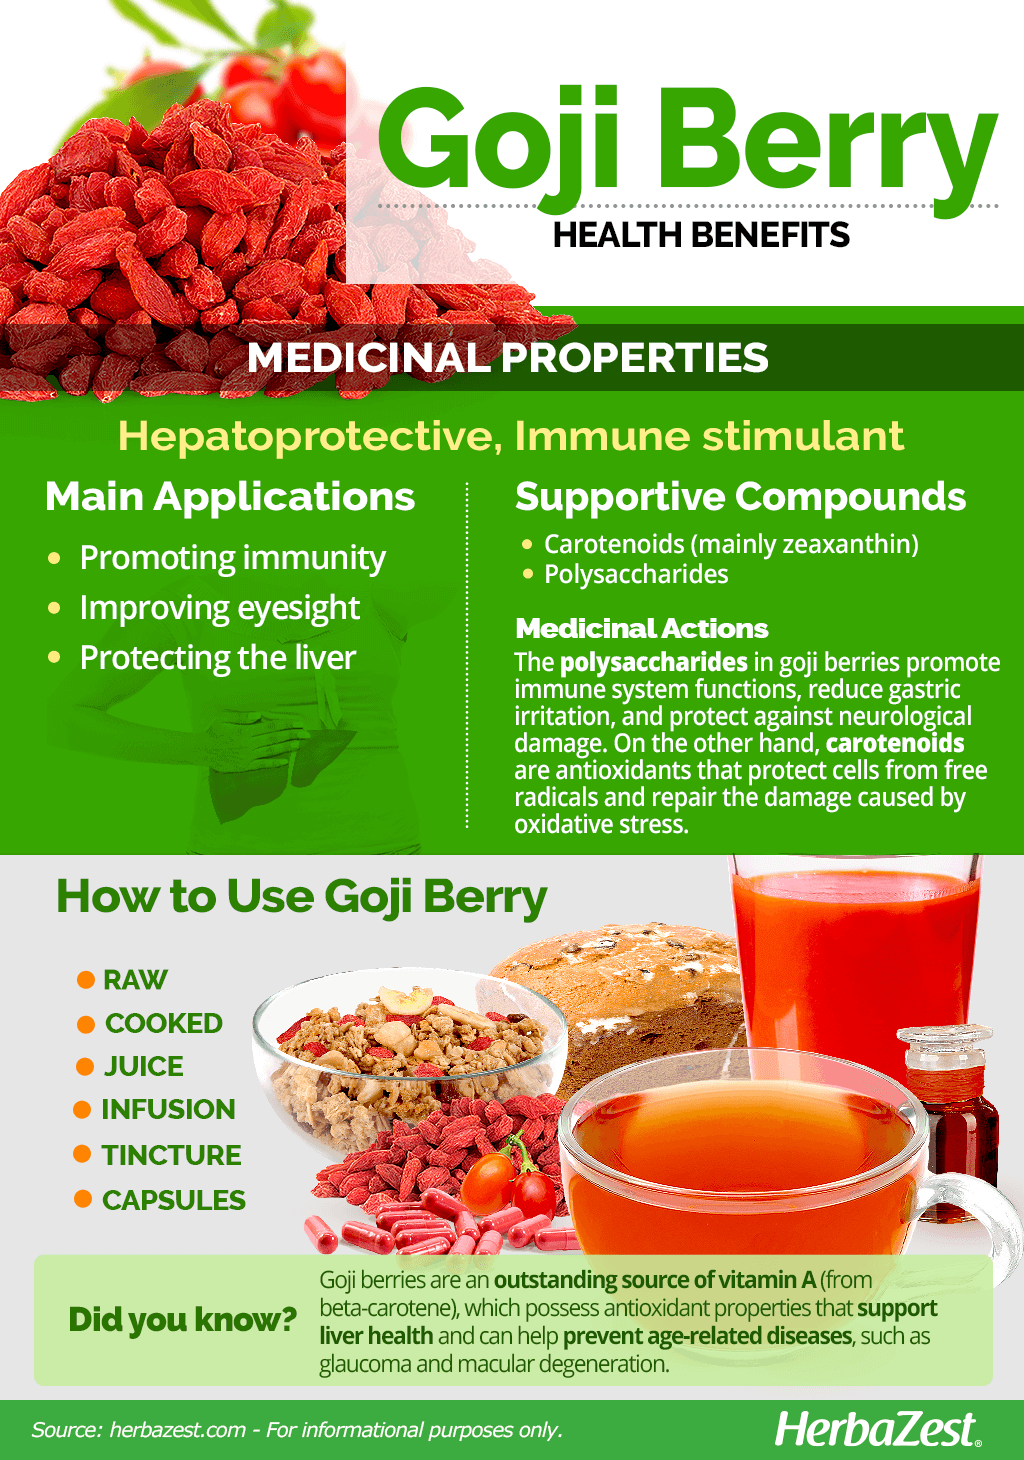 All About Goji Berry